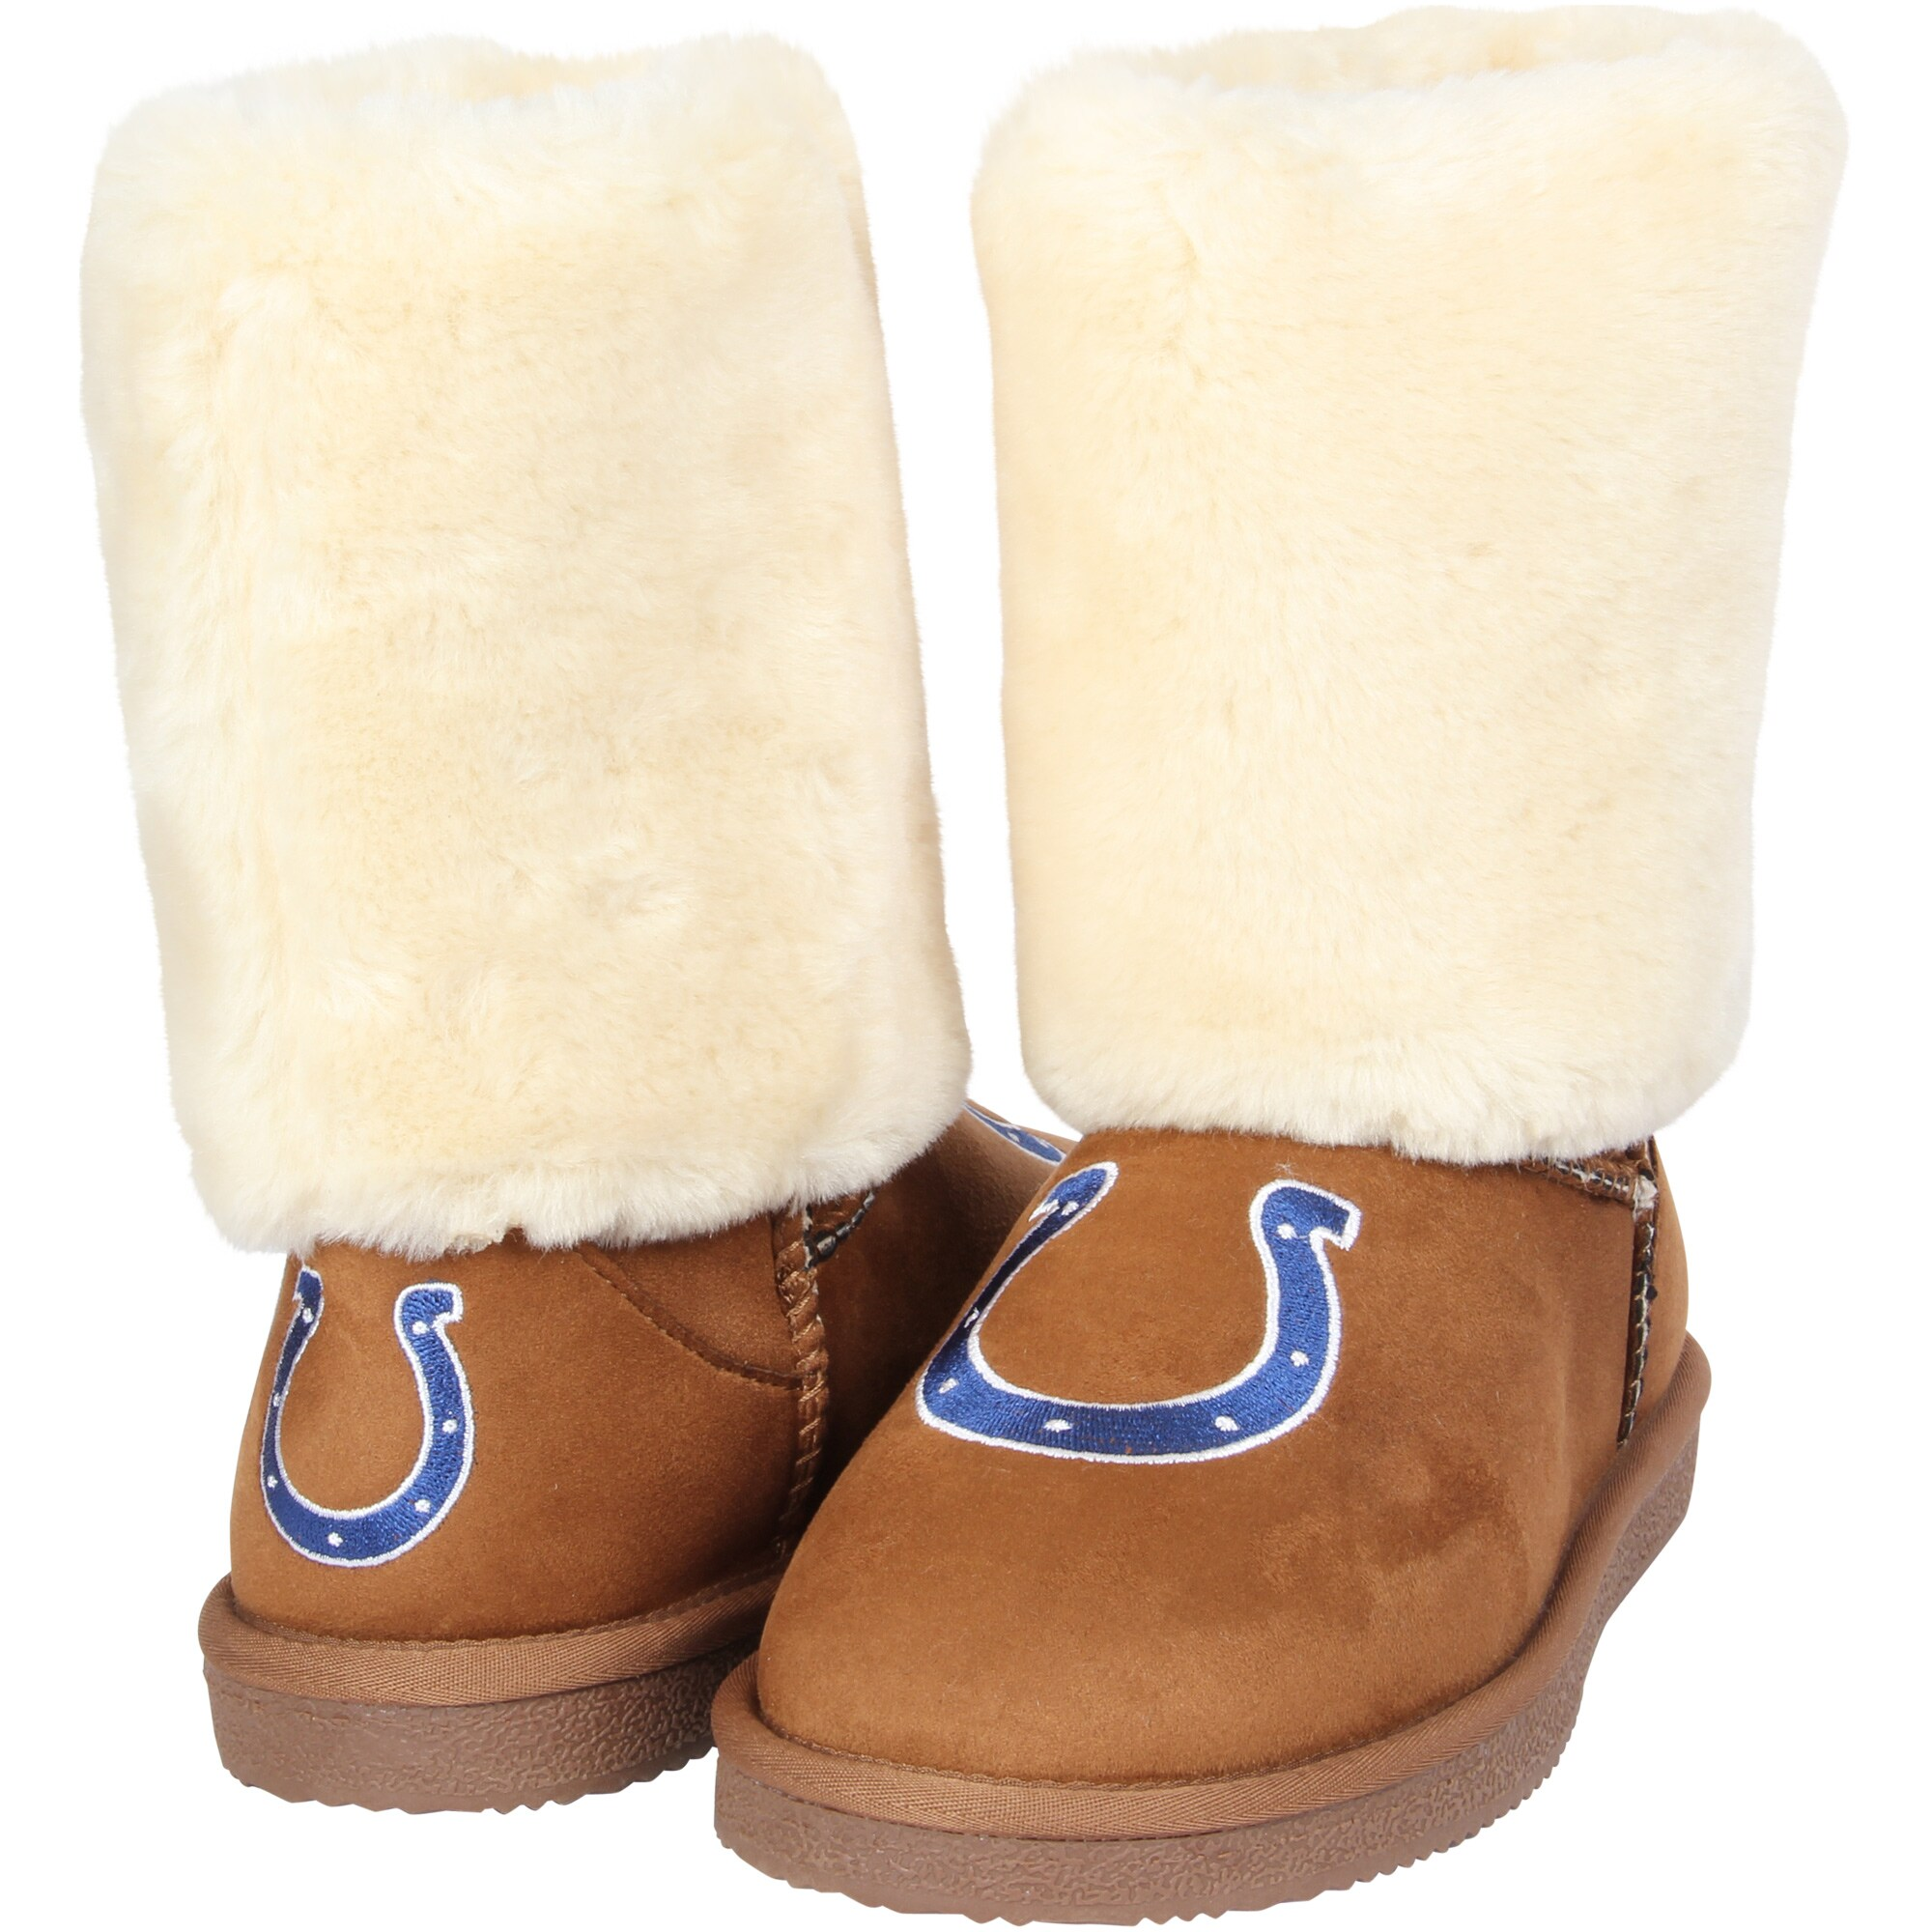 Indianapolis Colts Cuce Women's Fan Boot - Tan